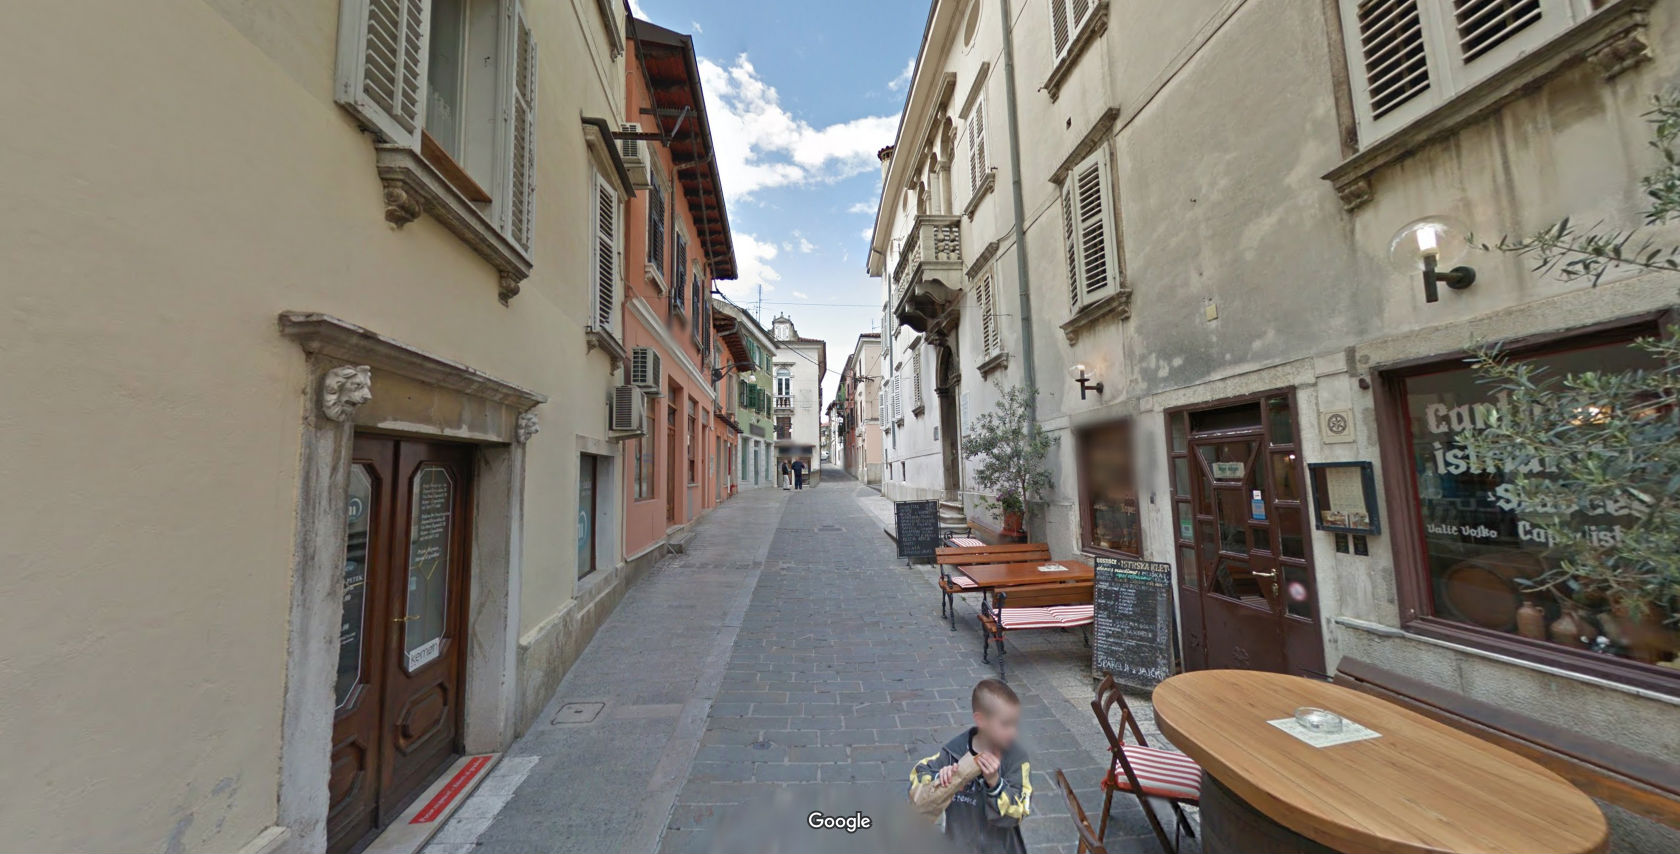 Koper, Slovenia.Not much different from a favela except they were able to afford fancier architecture, so we have a habit of glass casing places like this while also killing the systems that allowed these places to emerge. (Source:  Google Maps )